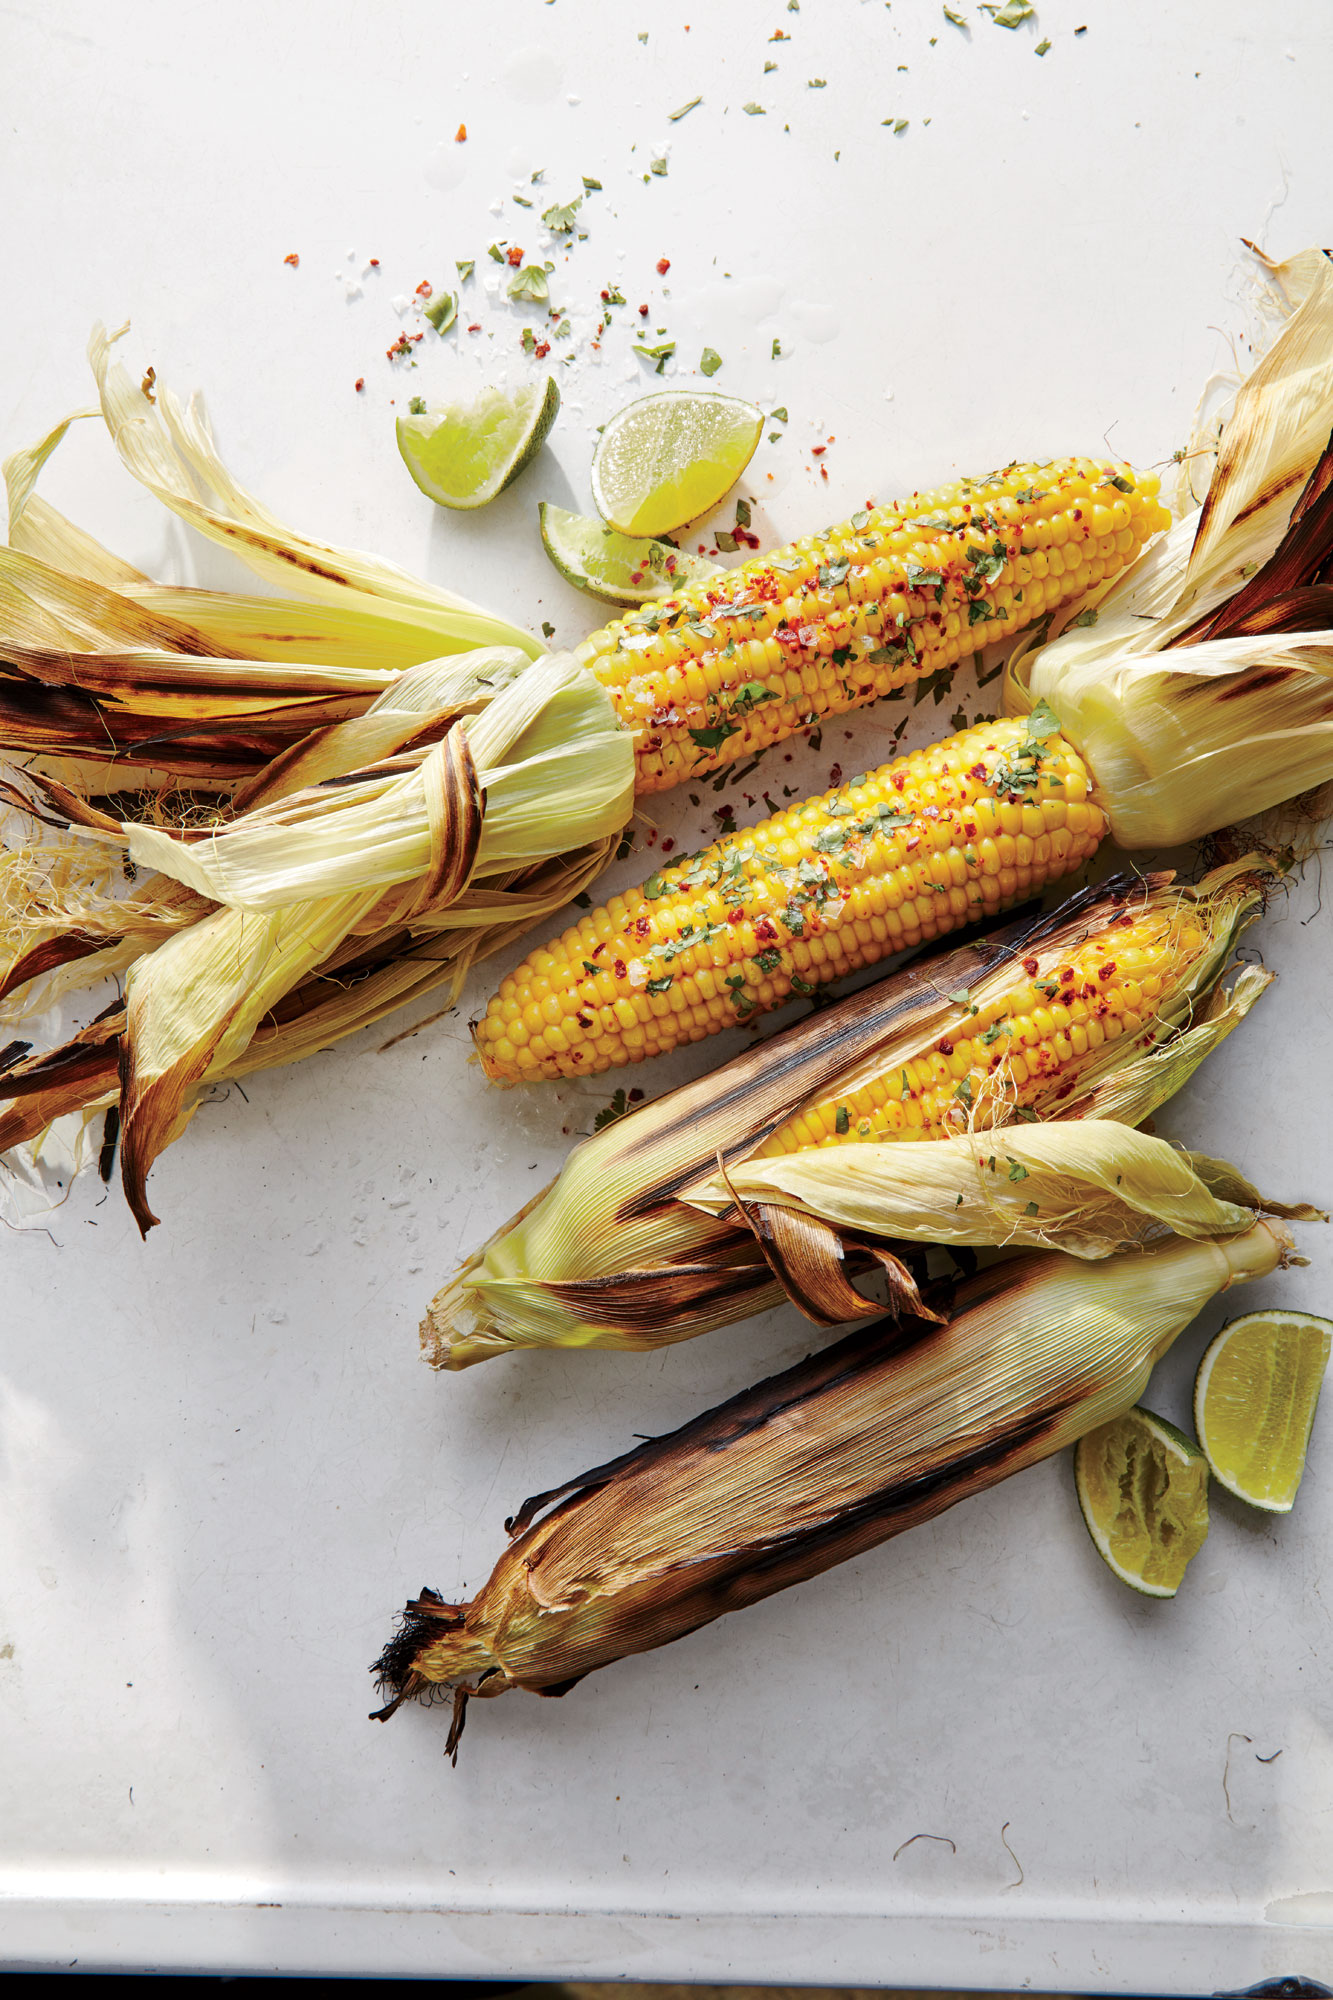 Grill-Steamed Corn with Cilantro and Chile Flakes